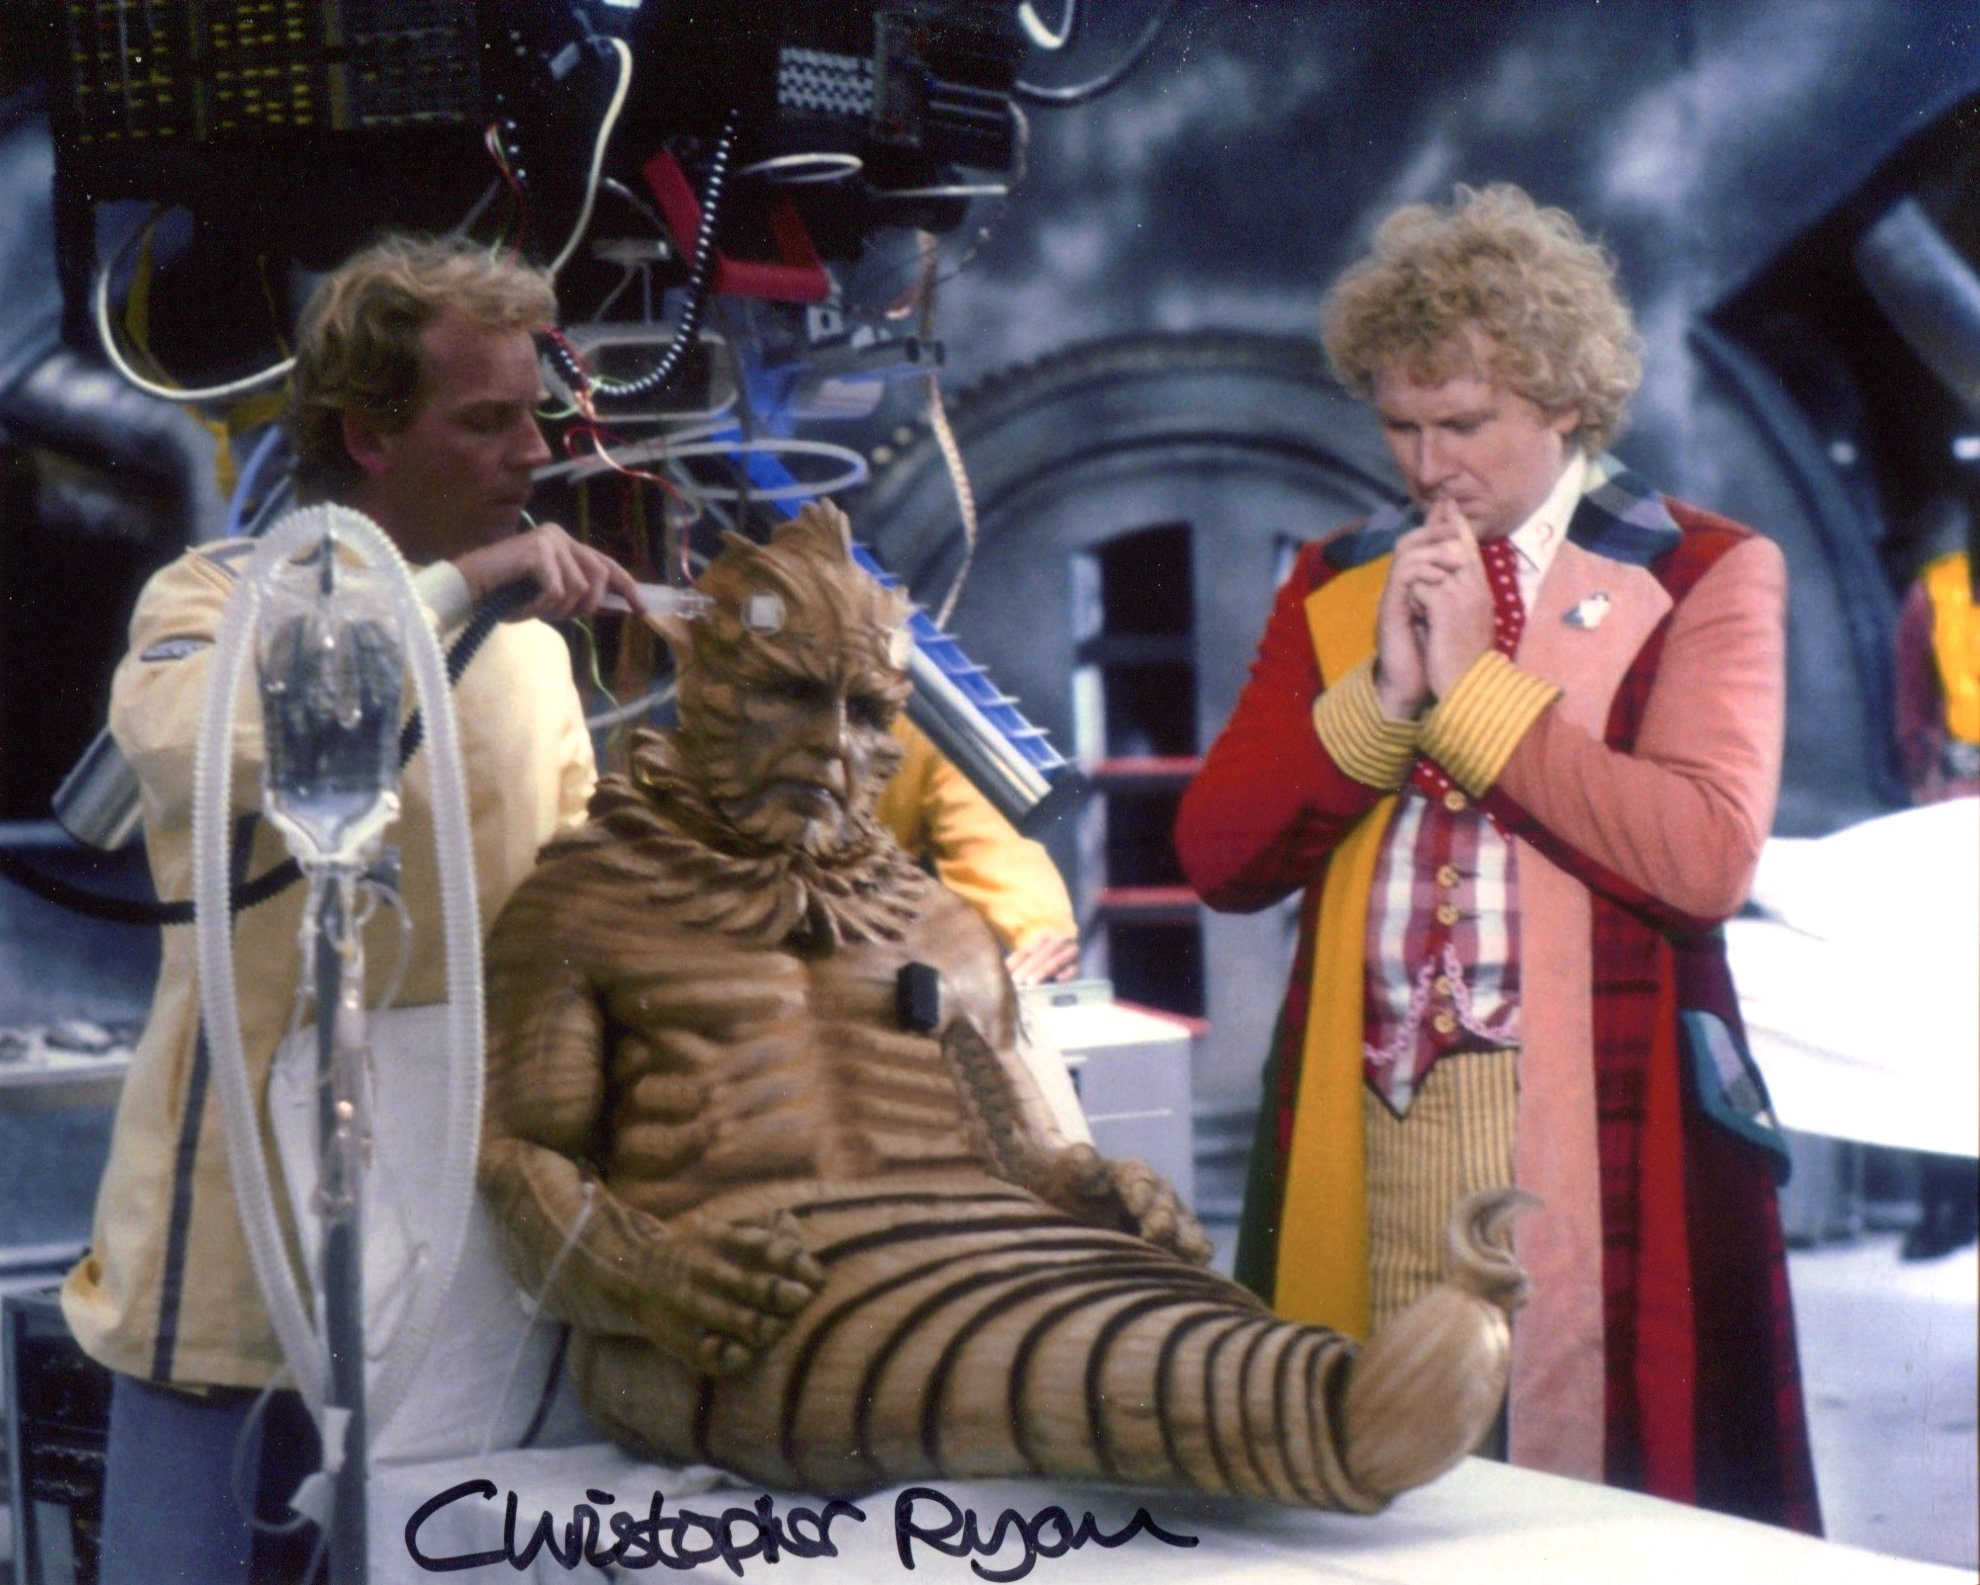 Doctor Who 8x10 inch photo scene signed by actor Christopher Ryan who played Lord Kiv. Good